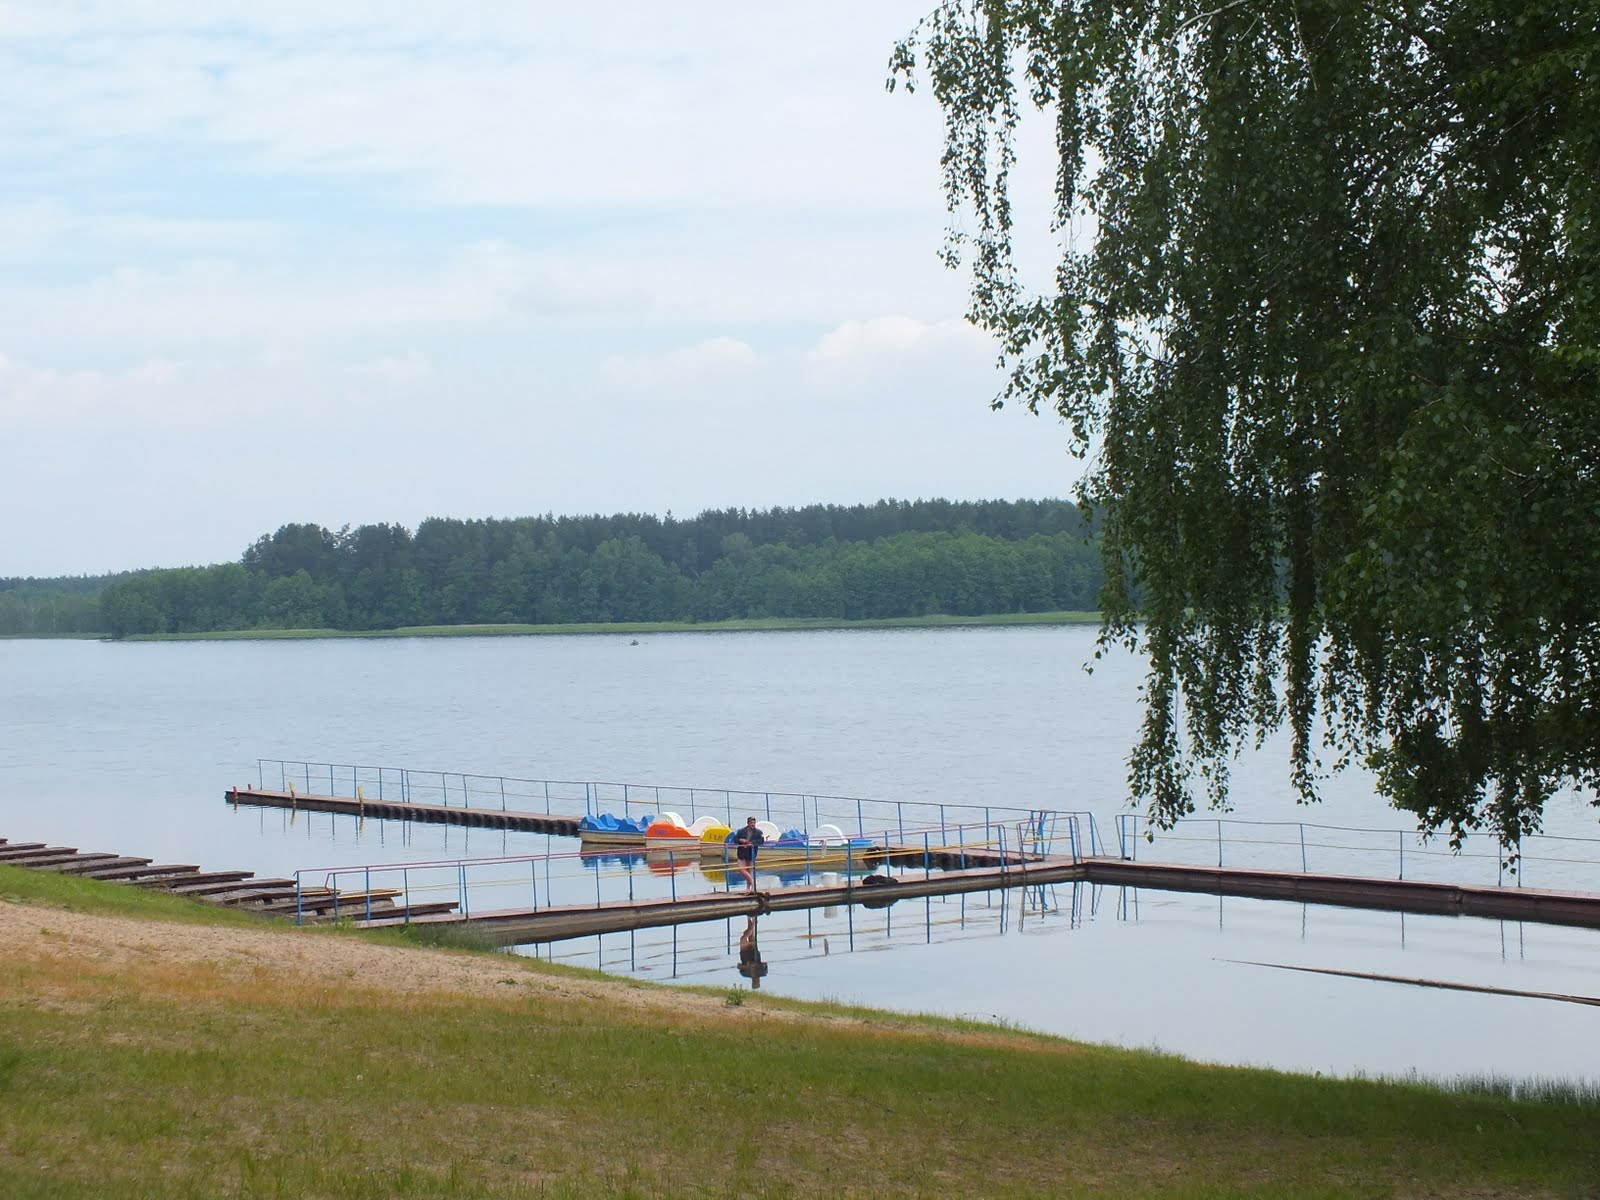 Person standing on a pier by a lake